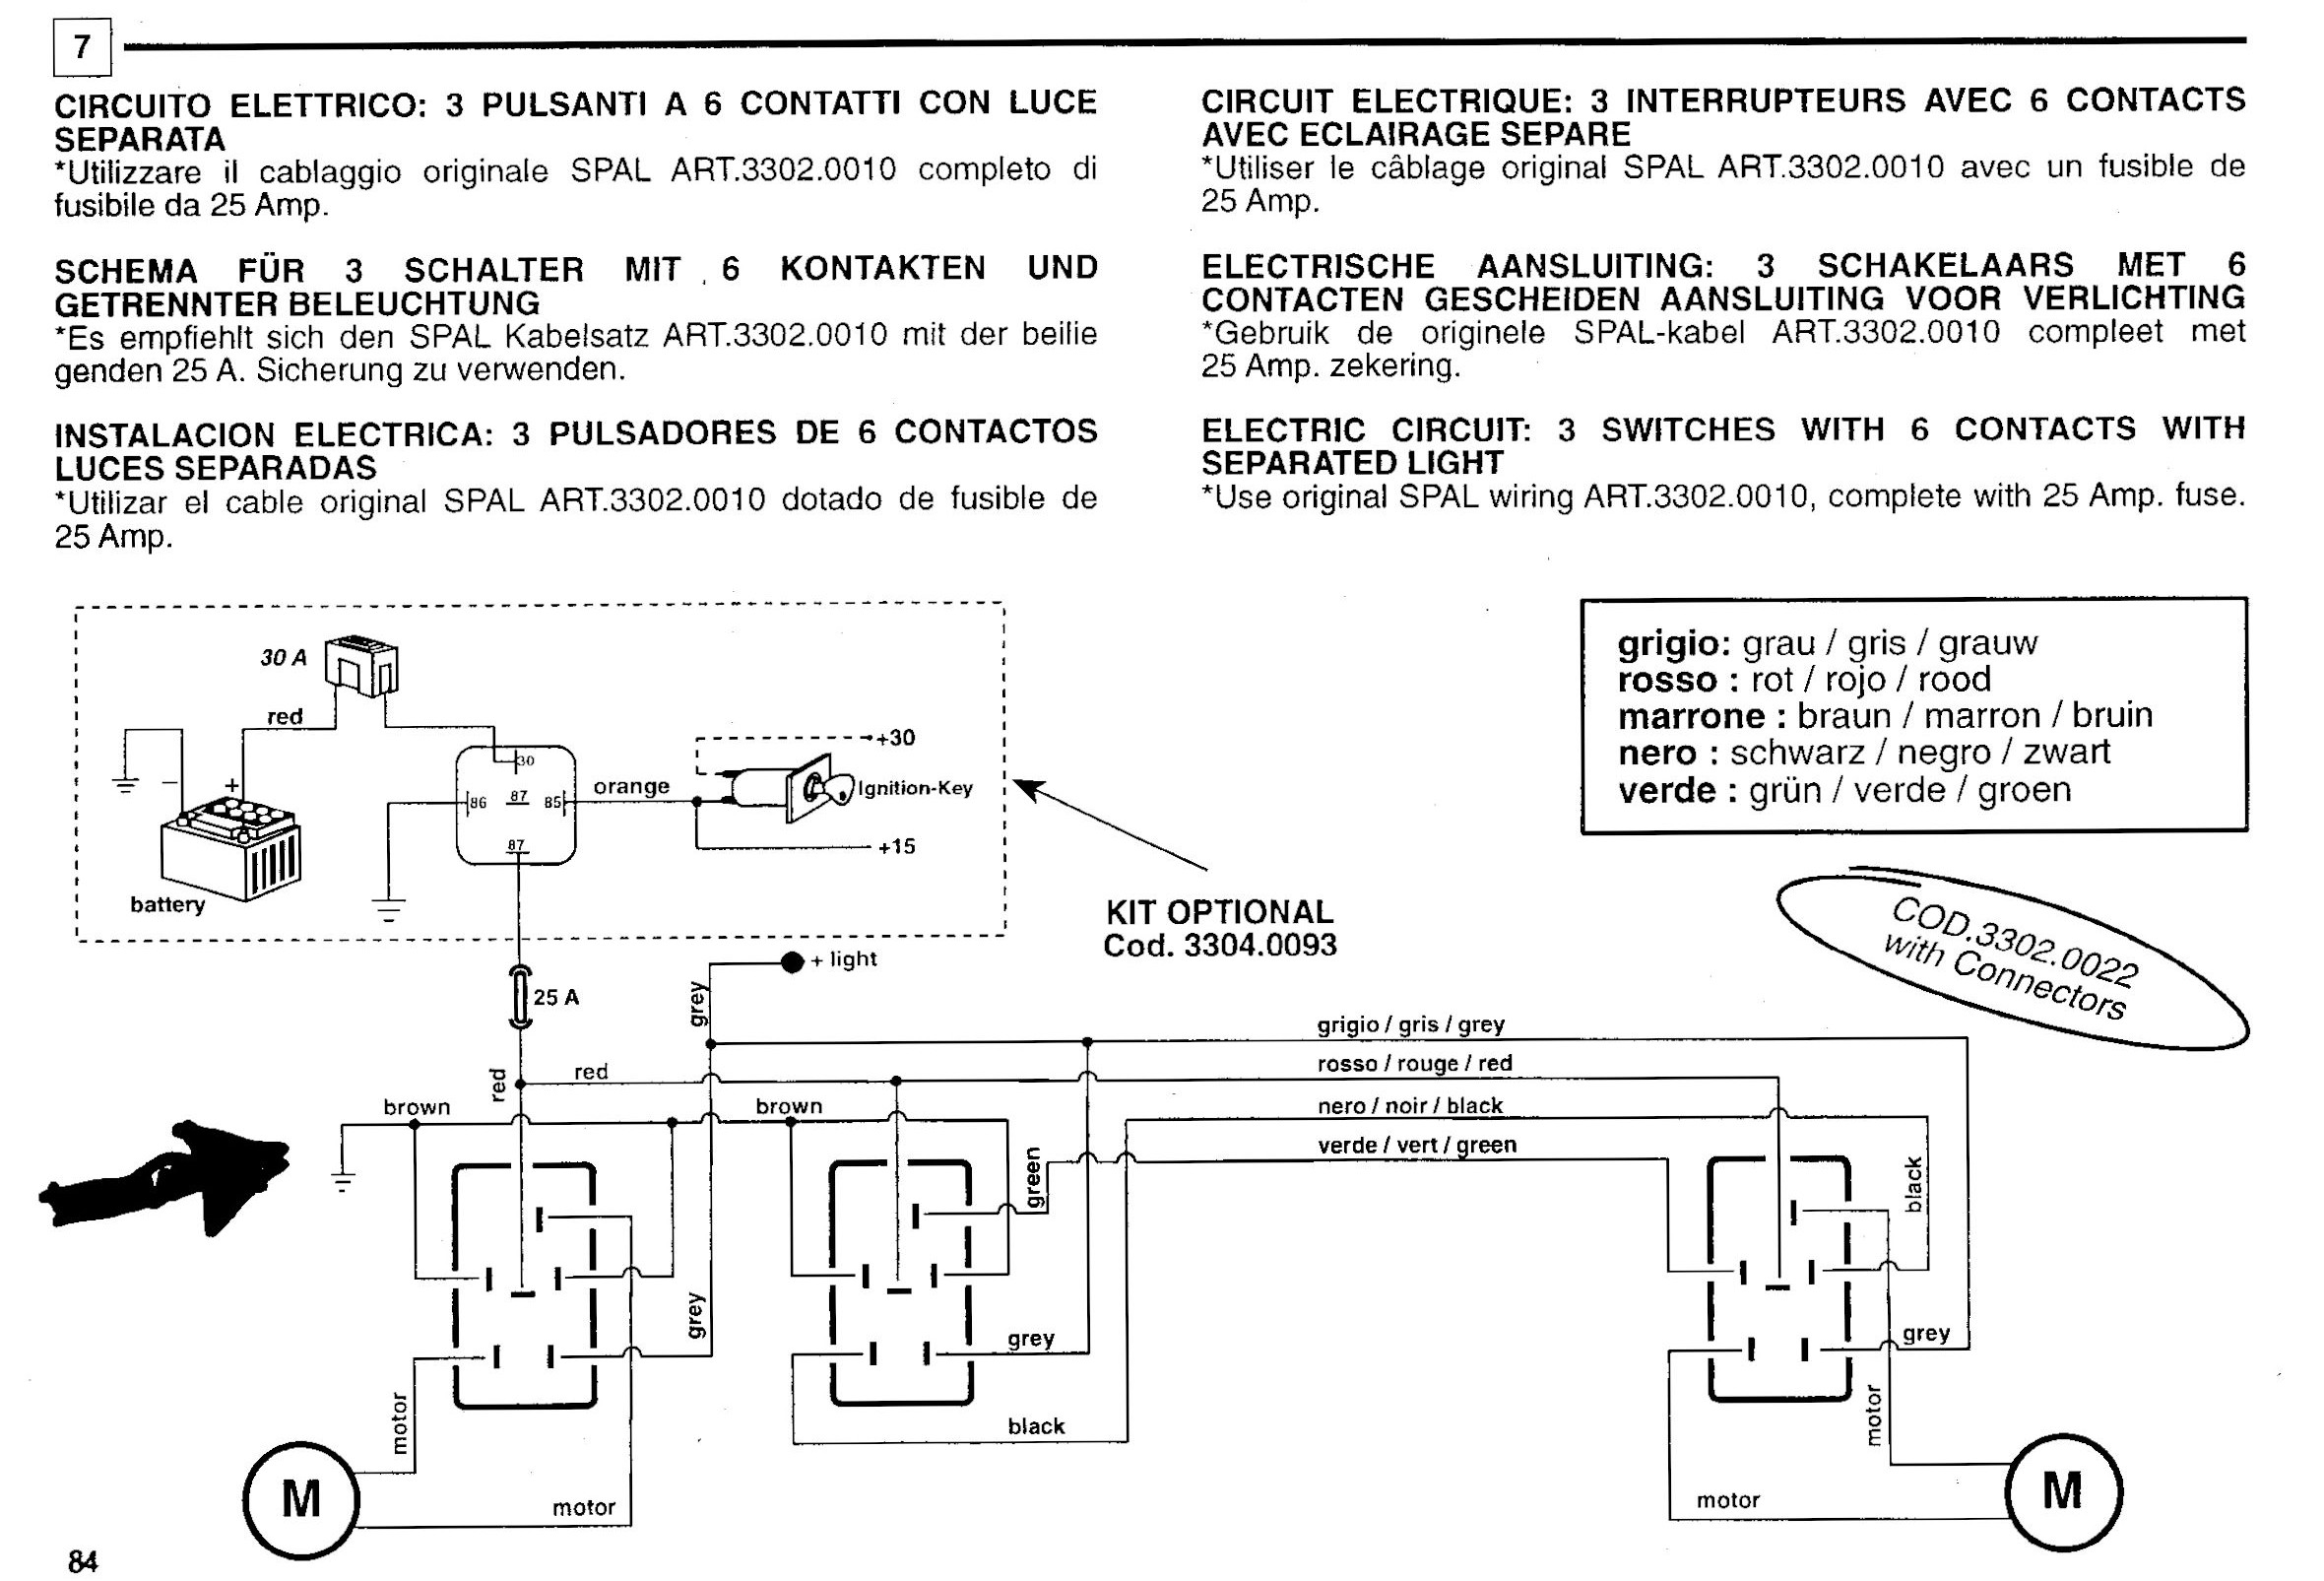 relay wiring diagram 5 pin whirlpool electric water heater spal power window all data